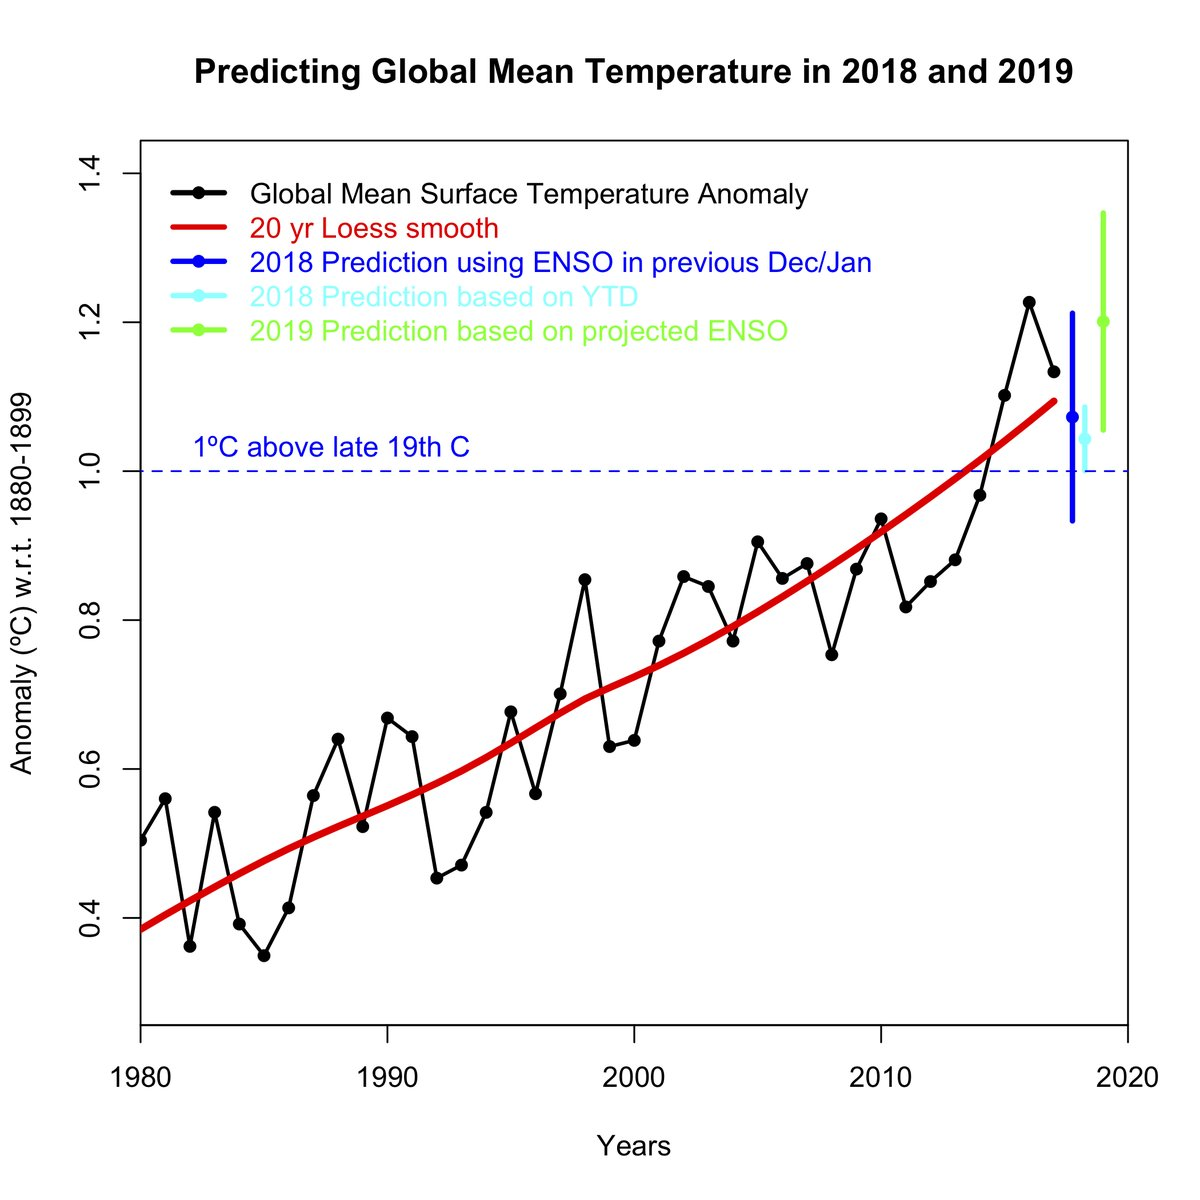 Graph showing Temperature projections for 2018 and 2019 provided by Dr Gavin Schmidt in late November 2018, using data from NASA GISTemp.